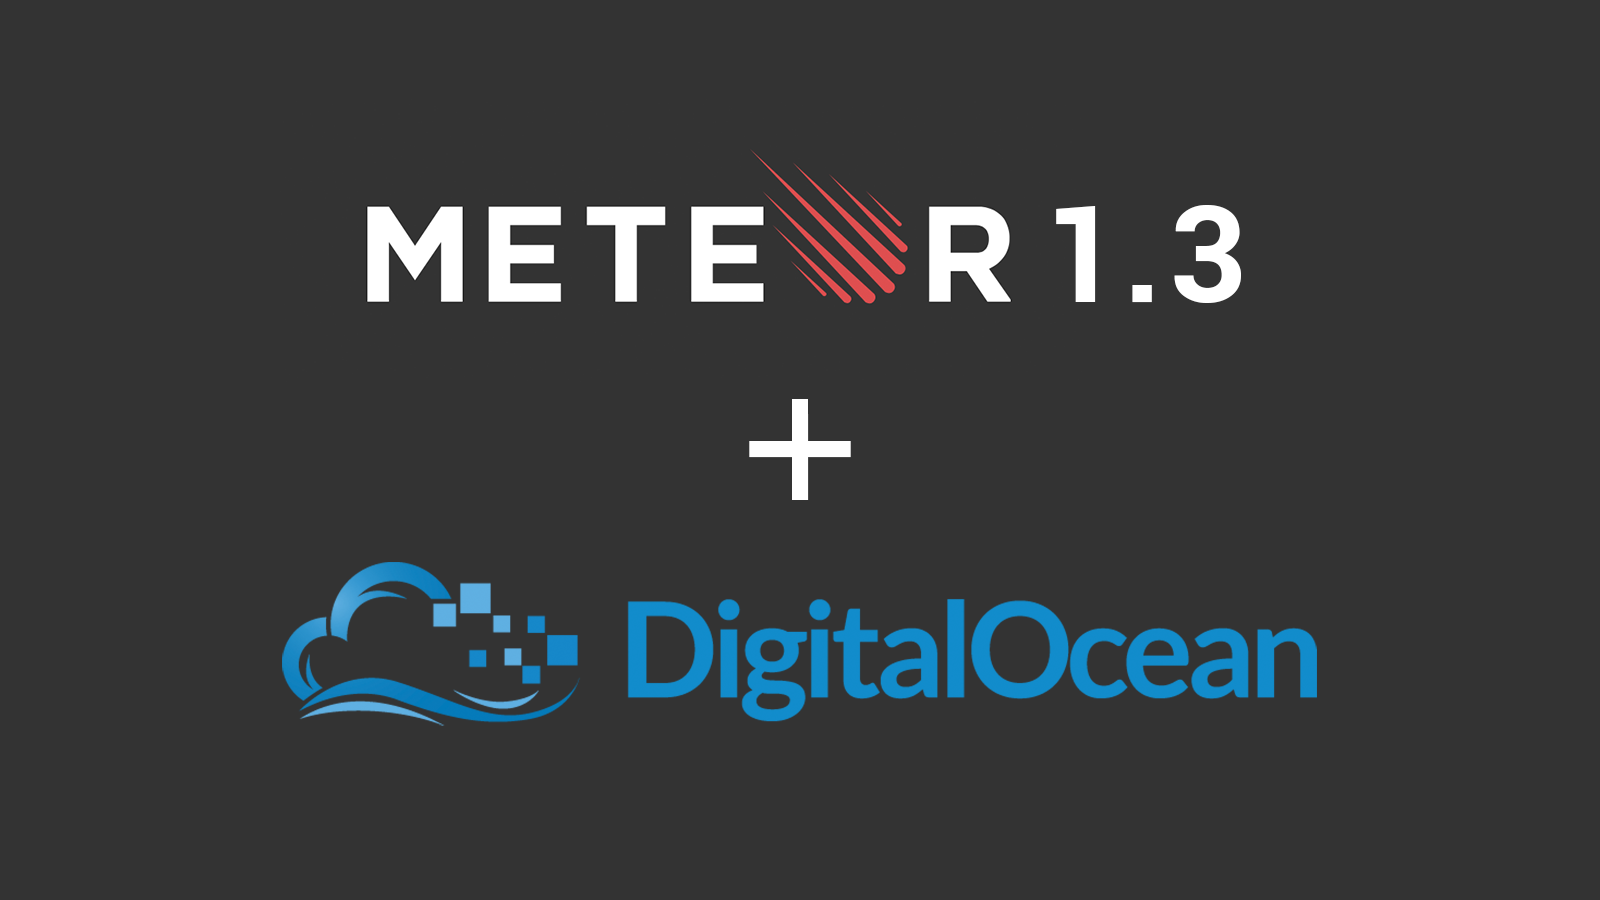 Meteor 1.3 + DigitalOcean